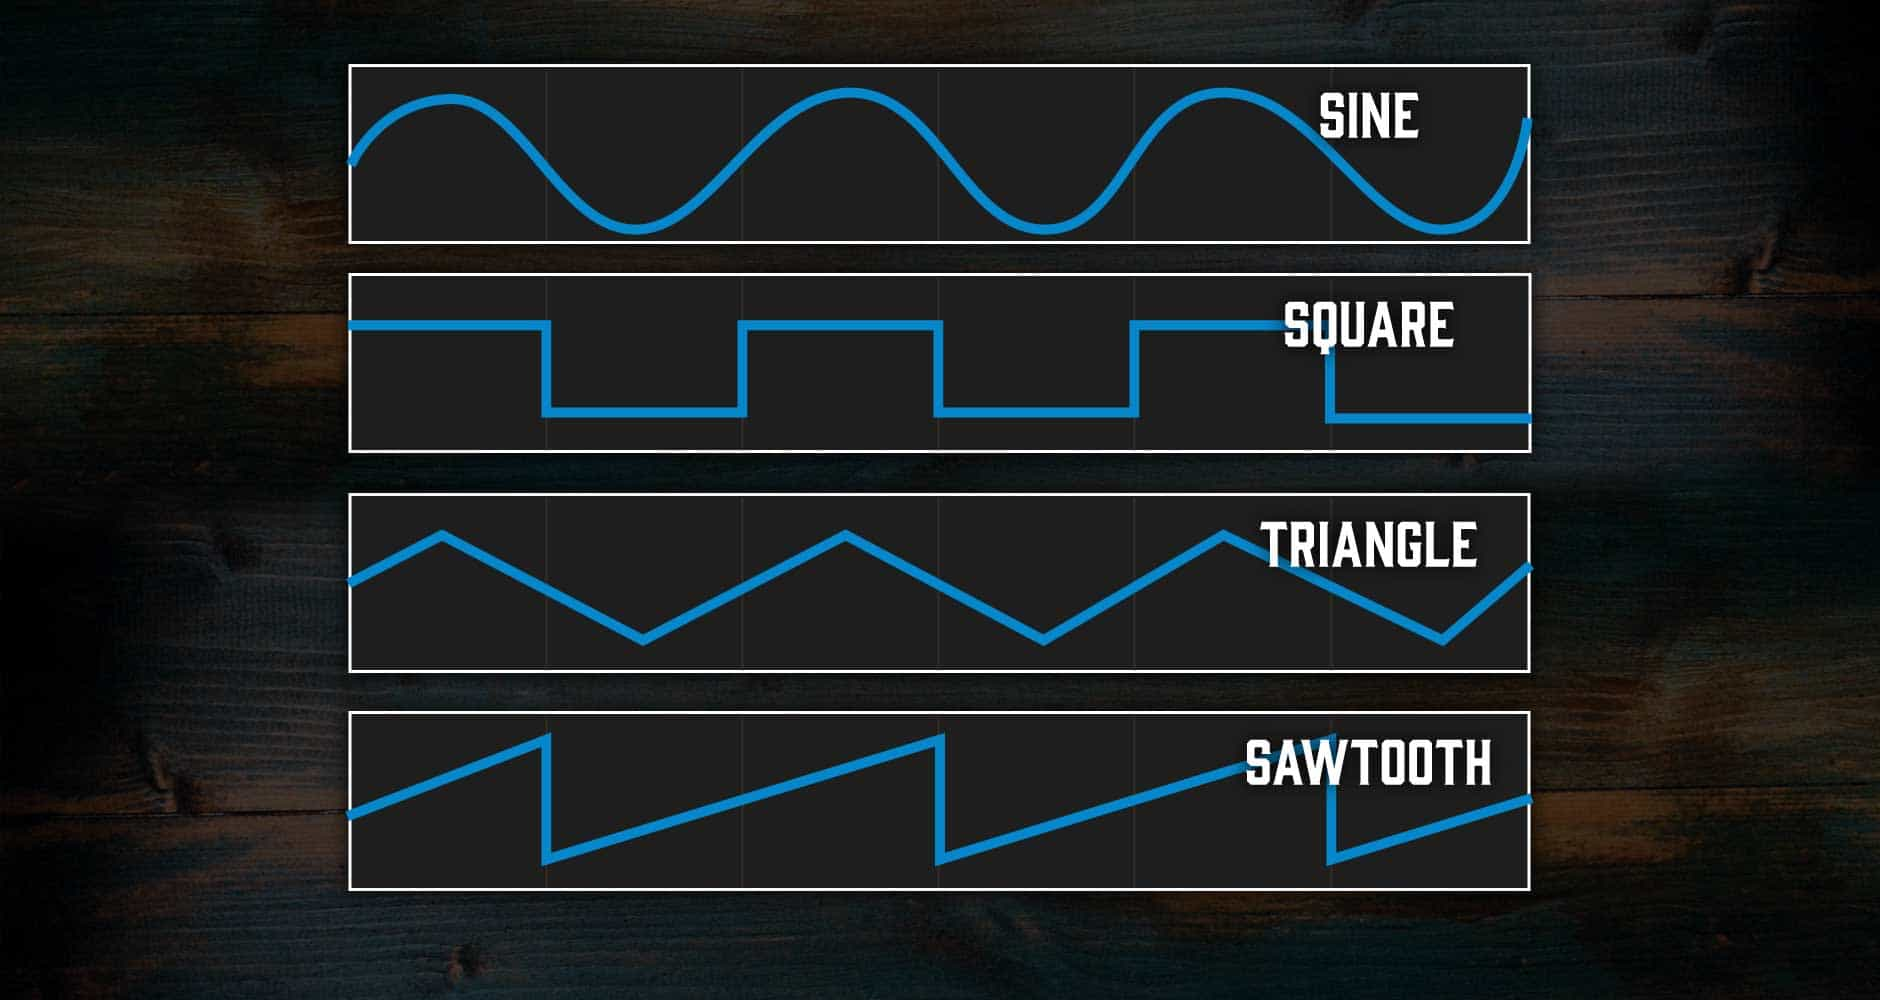 Modular Synths The Ultimate Guide Andertons Music Co Yamaha Wiring Diagram Bose 901 To Powered Mixer Sine Pure And Without Harmonics Also Referred As Fundamental In That Its Basis Of All Other Waveforms